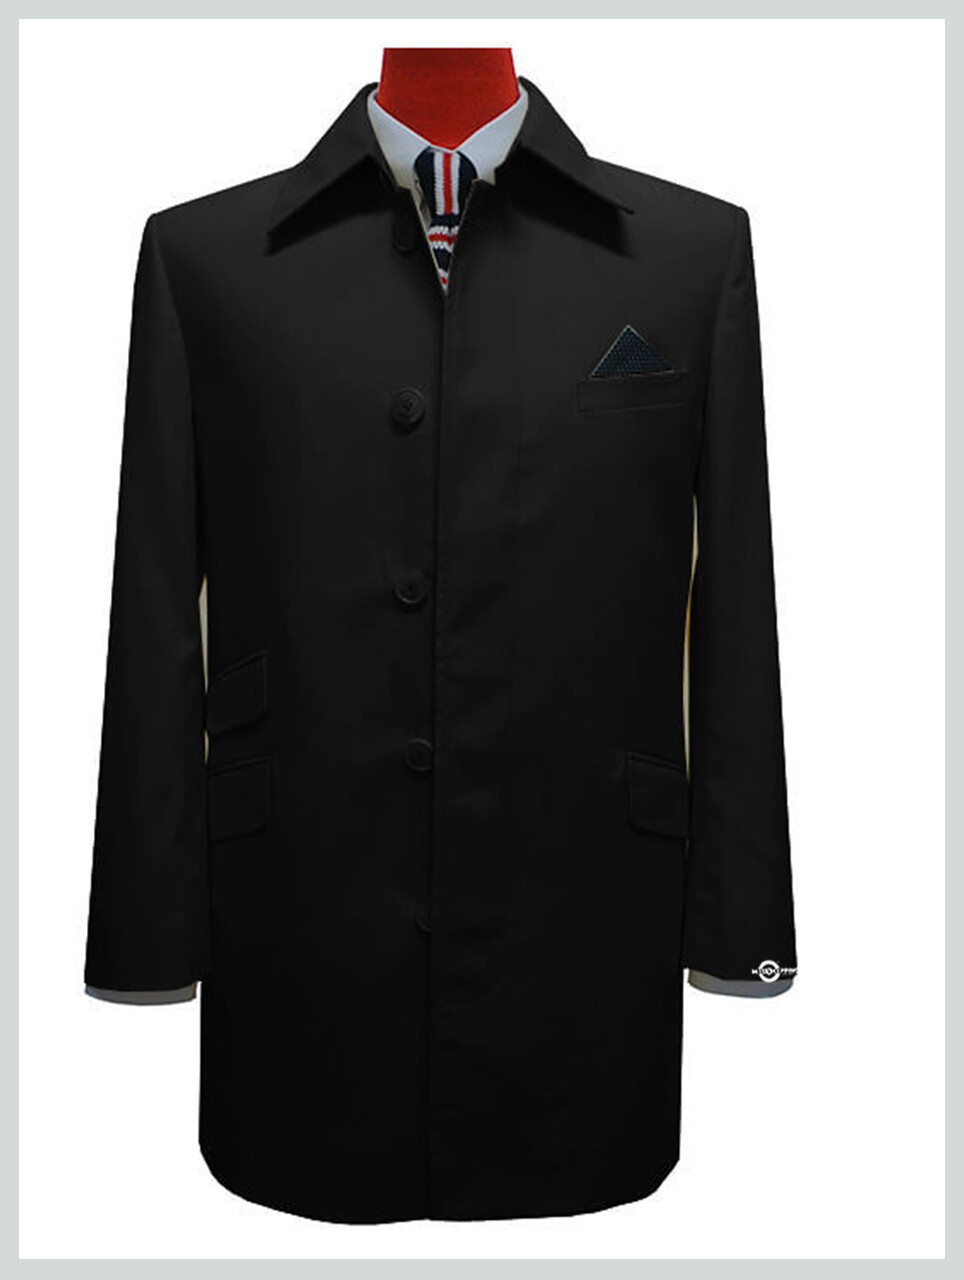 Vinatage Style Slim Fit Tailore Made Black Mac Coat For Men